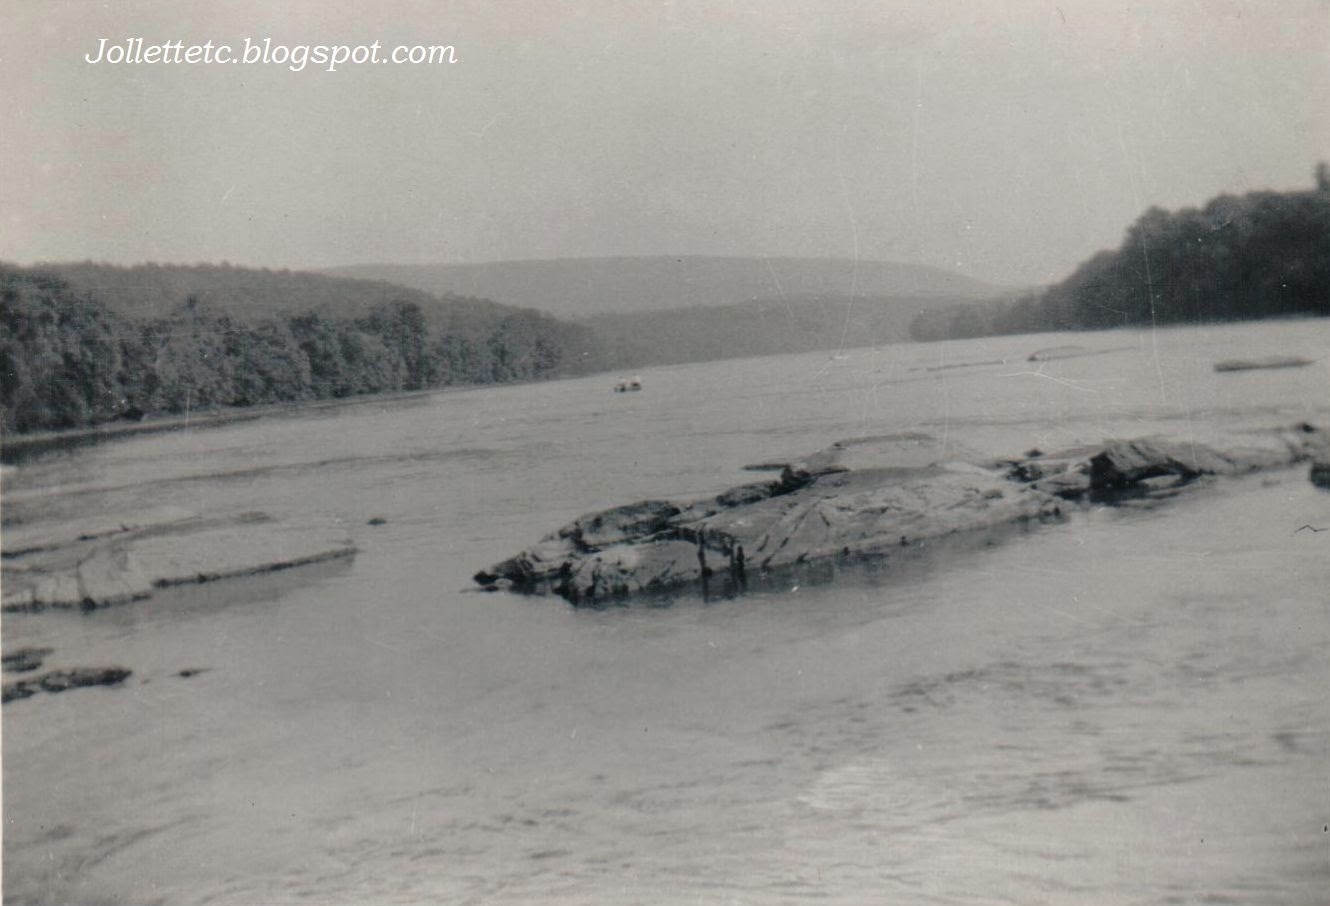 Shenandoah River Flood of 1936